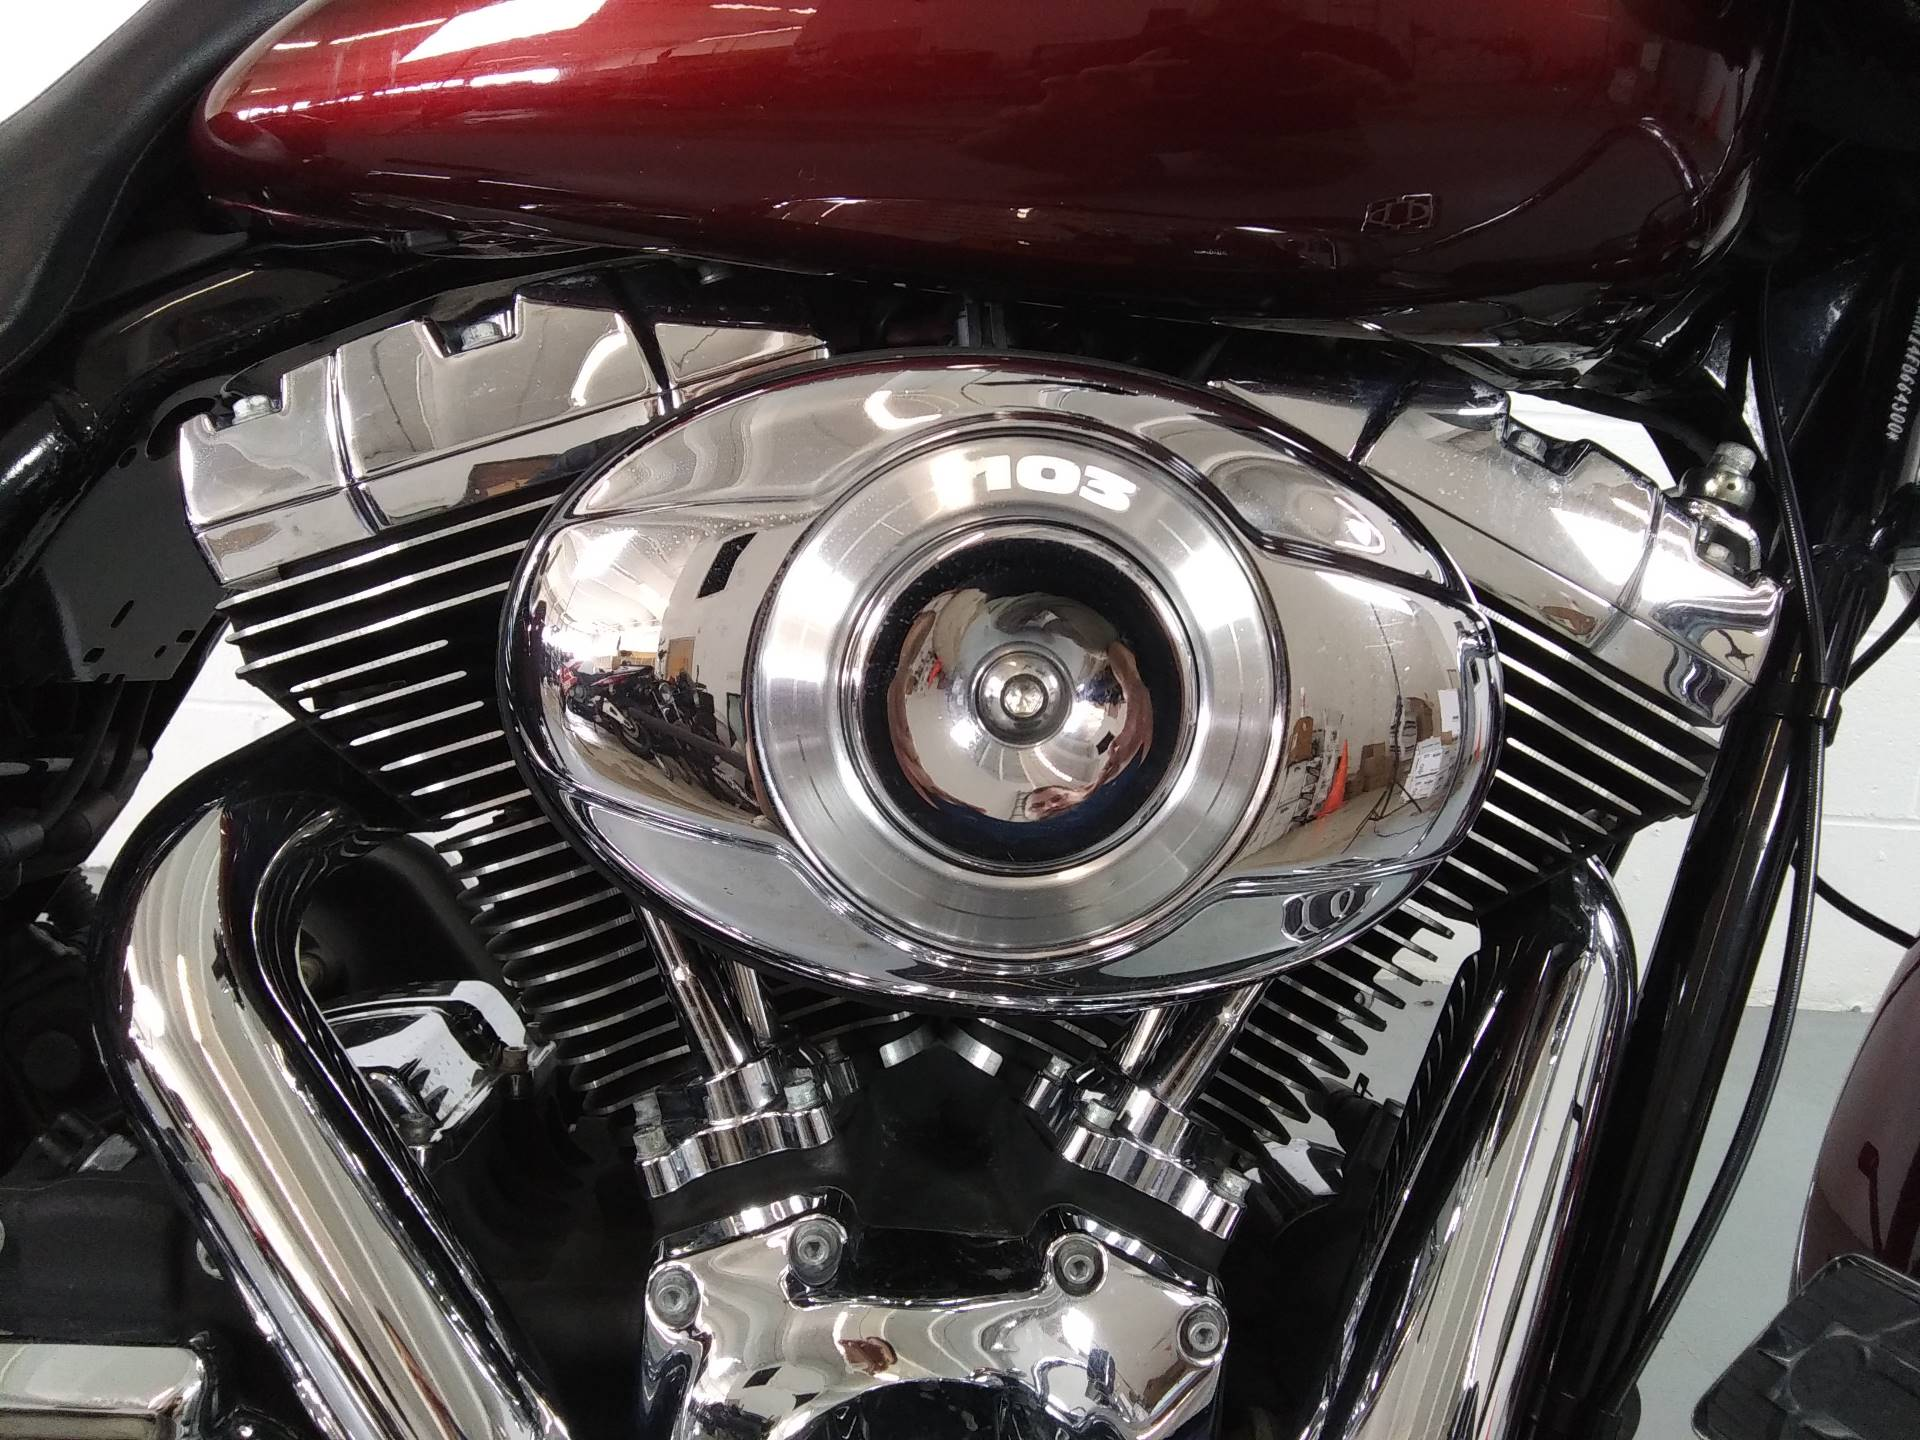 2015 Harley-Davidson Road Glide® in Stillwater, Oklahoma - Photo 2